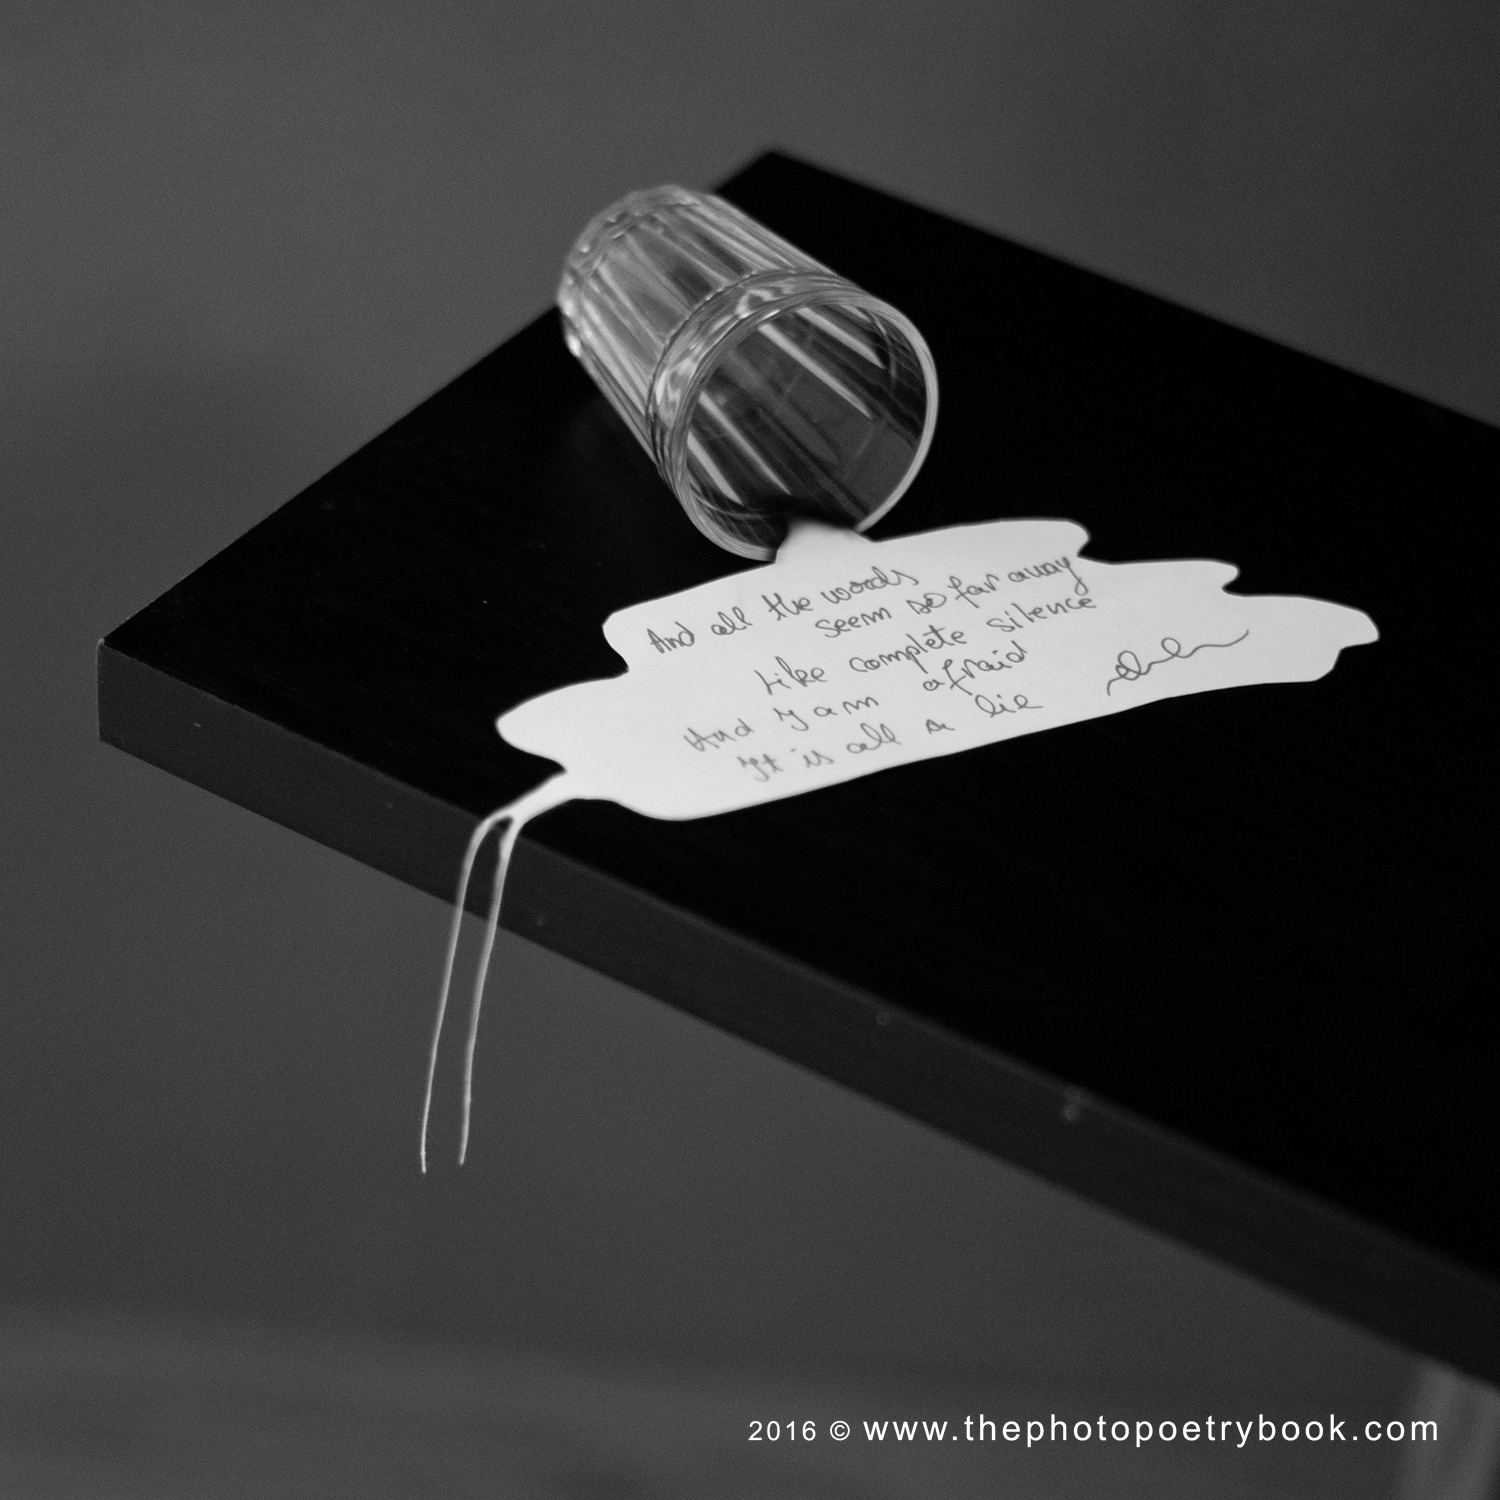 The Photo Poetry Book ~ a year of 366 days of PhotoPoetry~ Day 167 - Lie